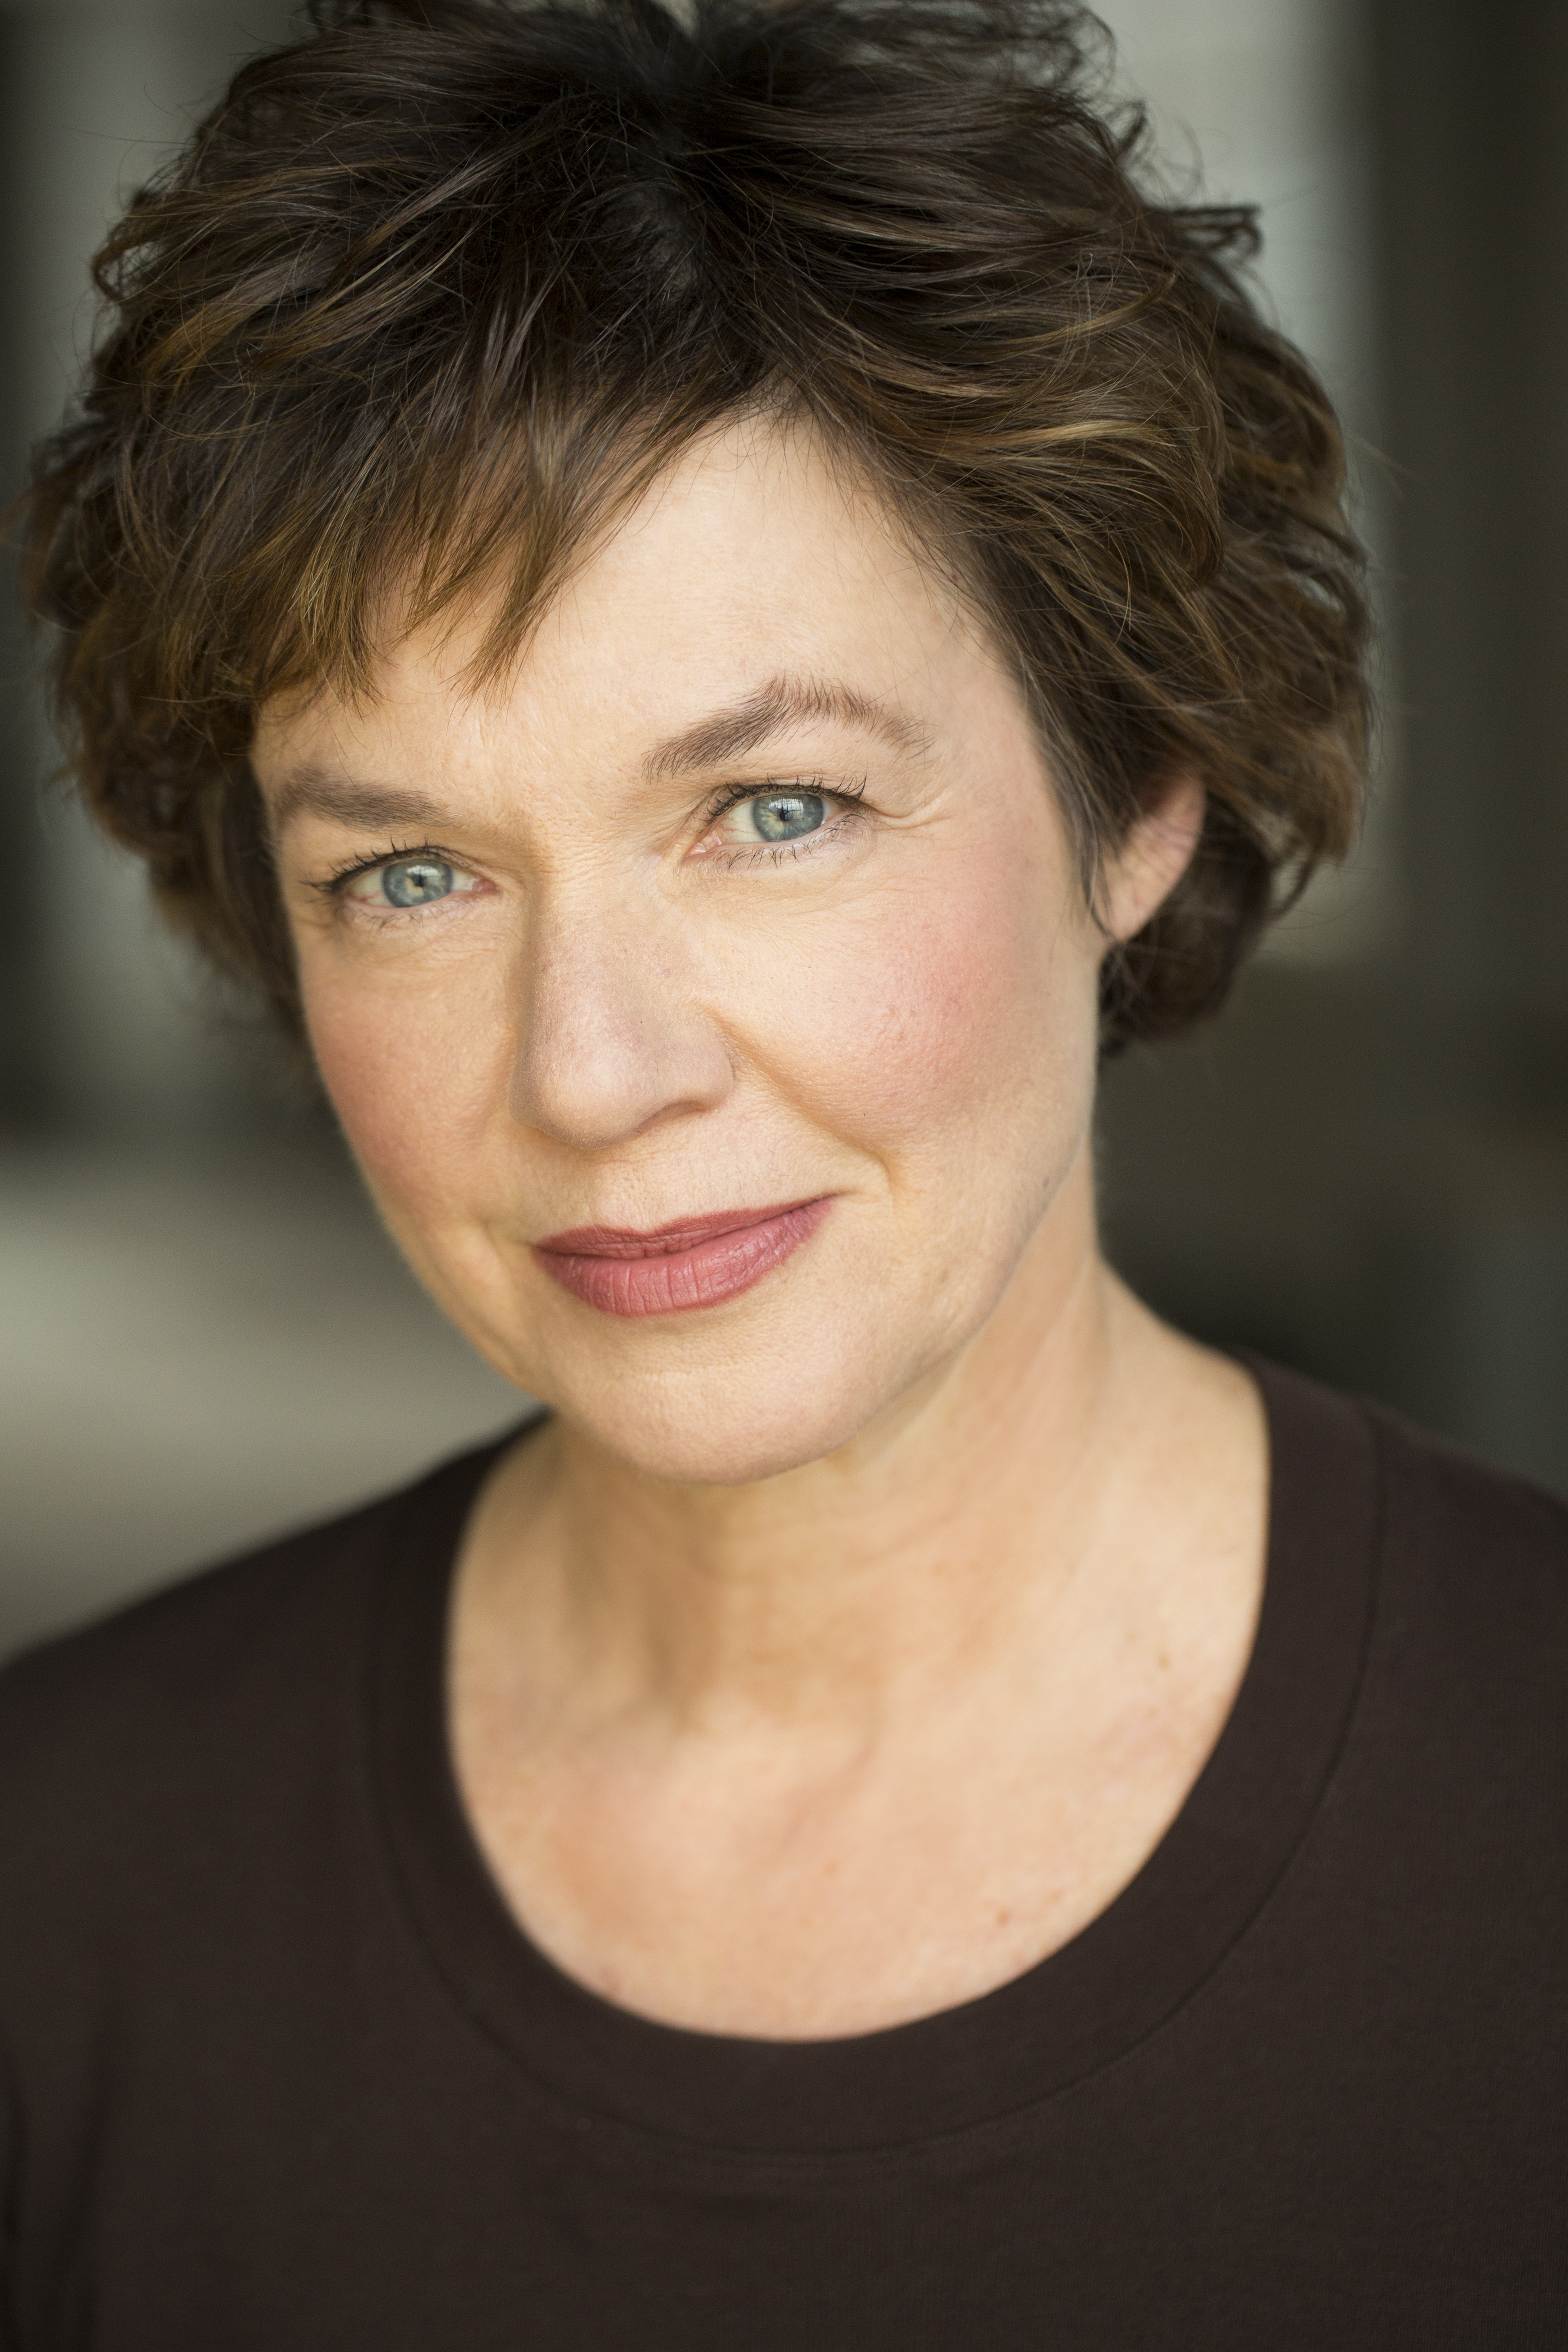 Elizabeth Ann Townsend actress. St. Louis and American actor. Count Time! Alba and chekhov